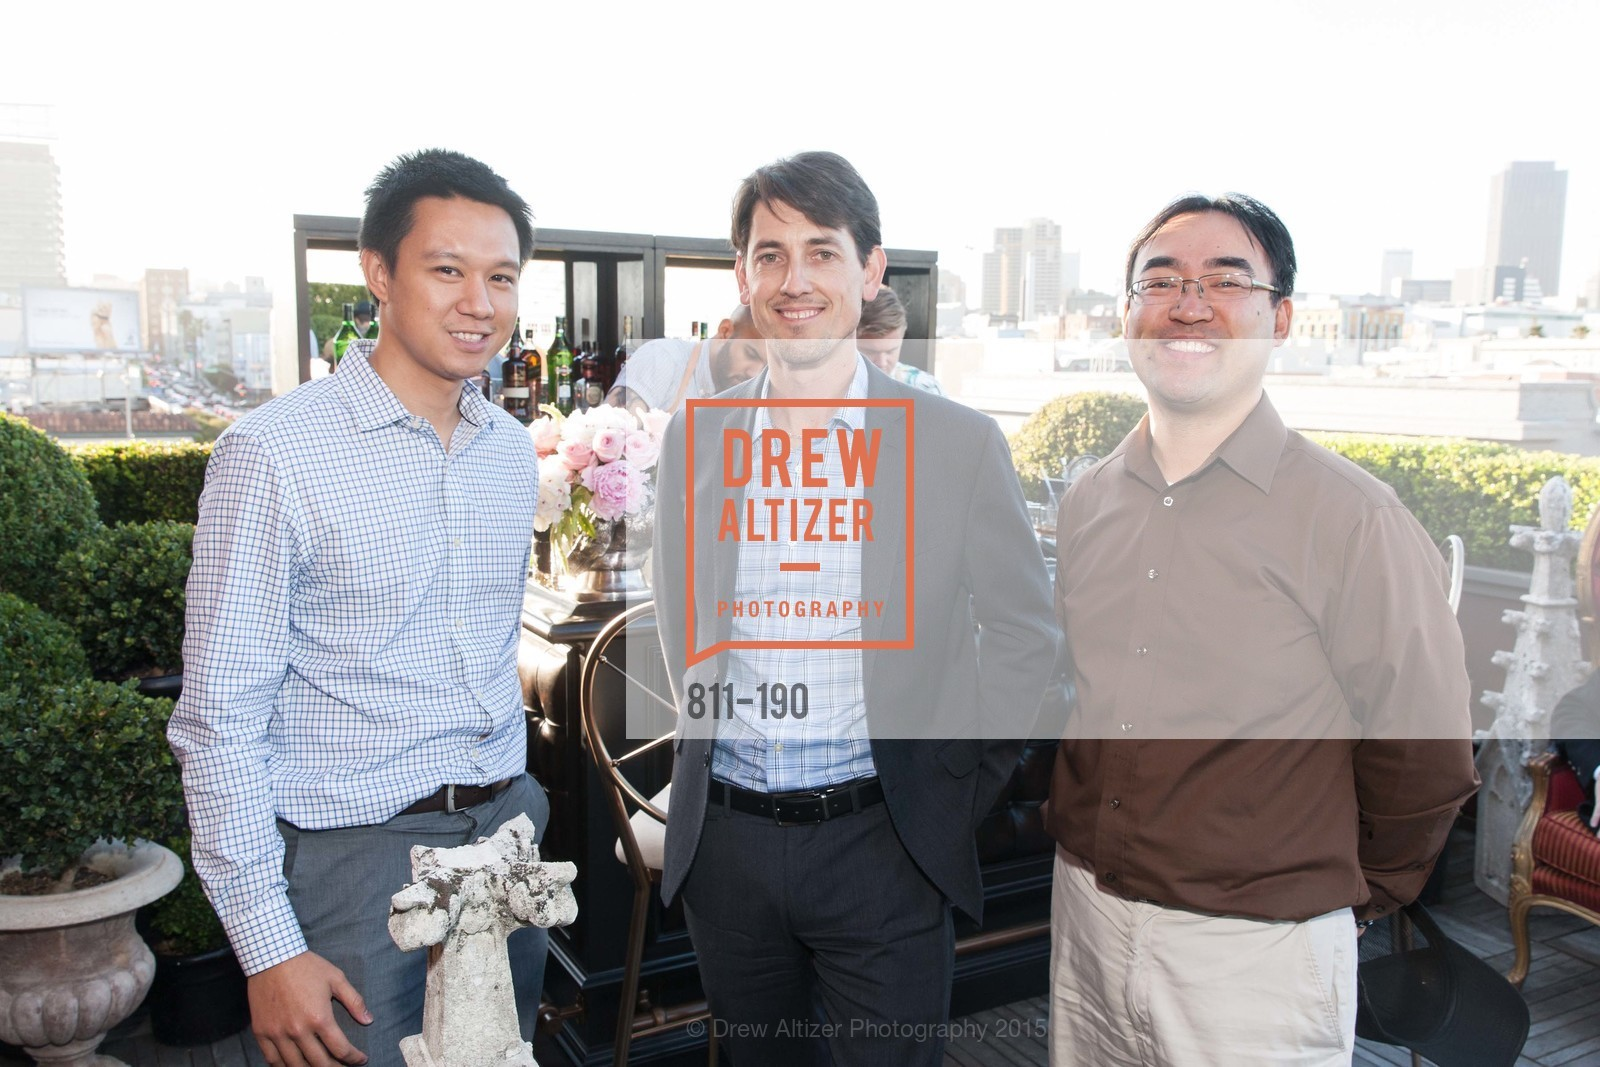 Michael Dodd, Justin Chin, KEN FULK'S New Furniture Line Unveiling at THE MAGIC FACTORY, The Magic Factory. 310 7th St, June 25th, 2015,Drew Altizer, Drew Altizer Photography, full-service agency, private events, San Francisco photographer, photographer california